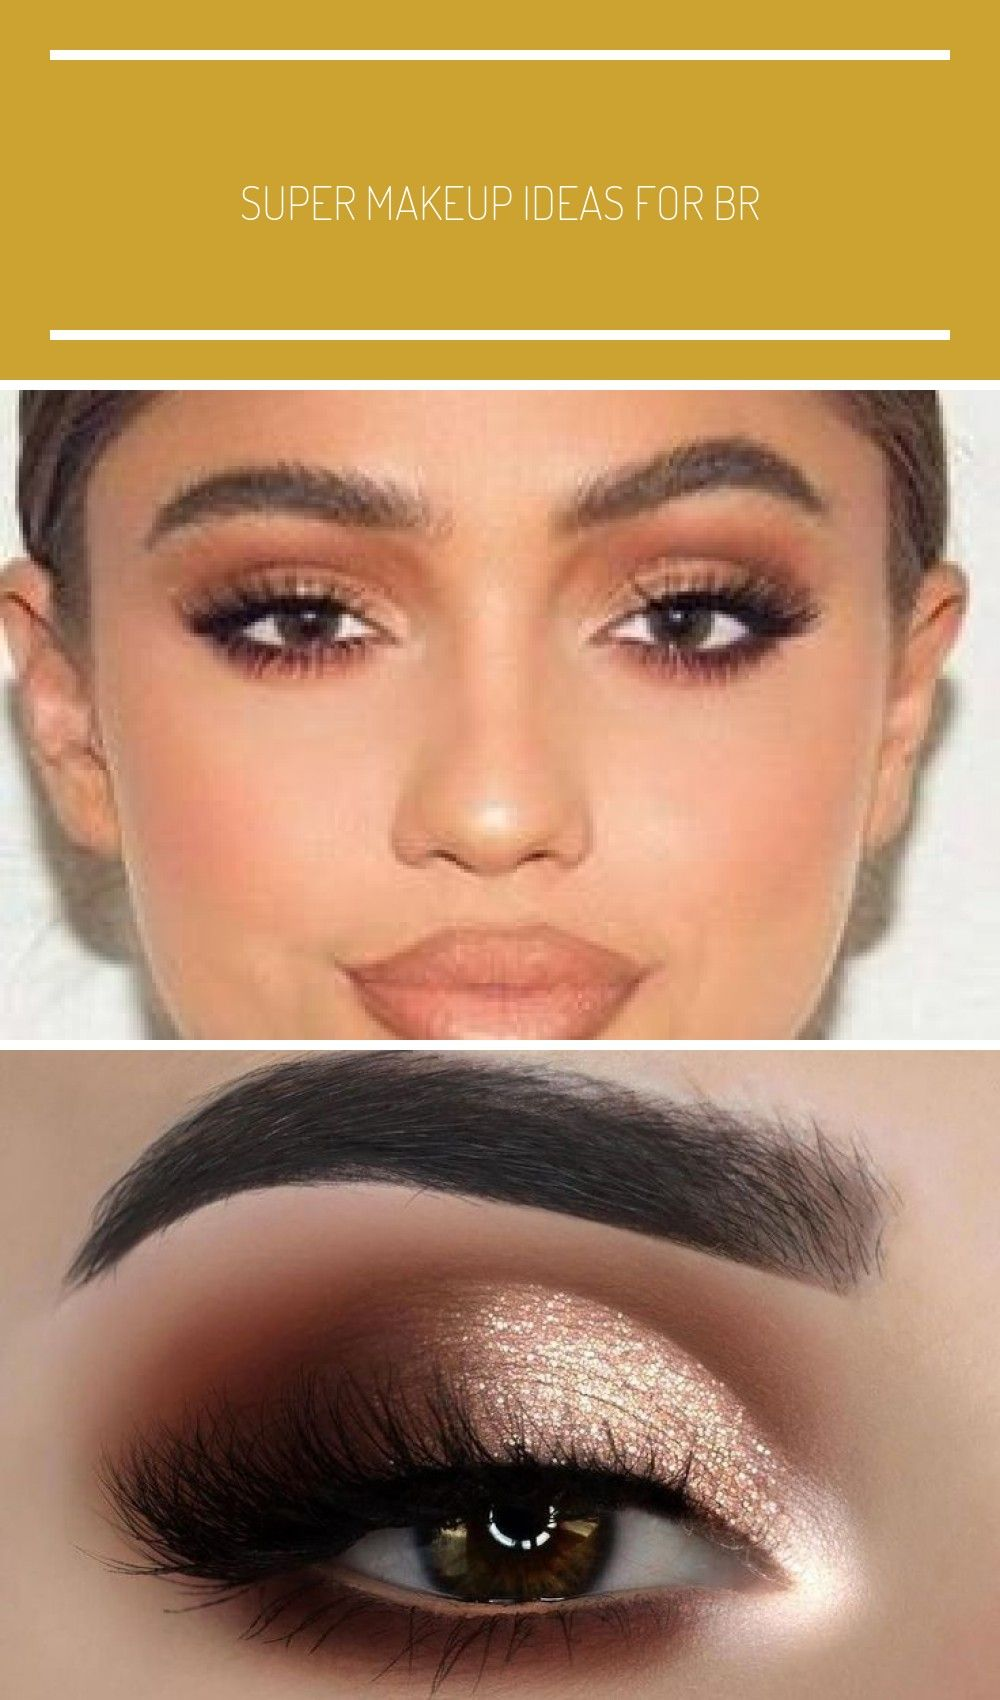 Super makeup ideas for brown eyes prom night make up 52 ideas - up ideas for brown eyes night